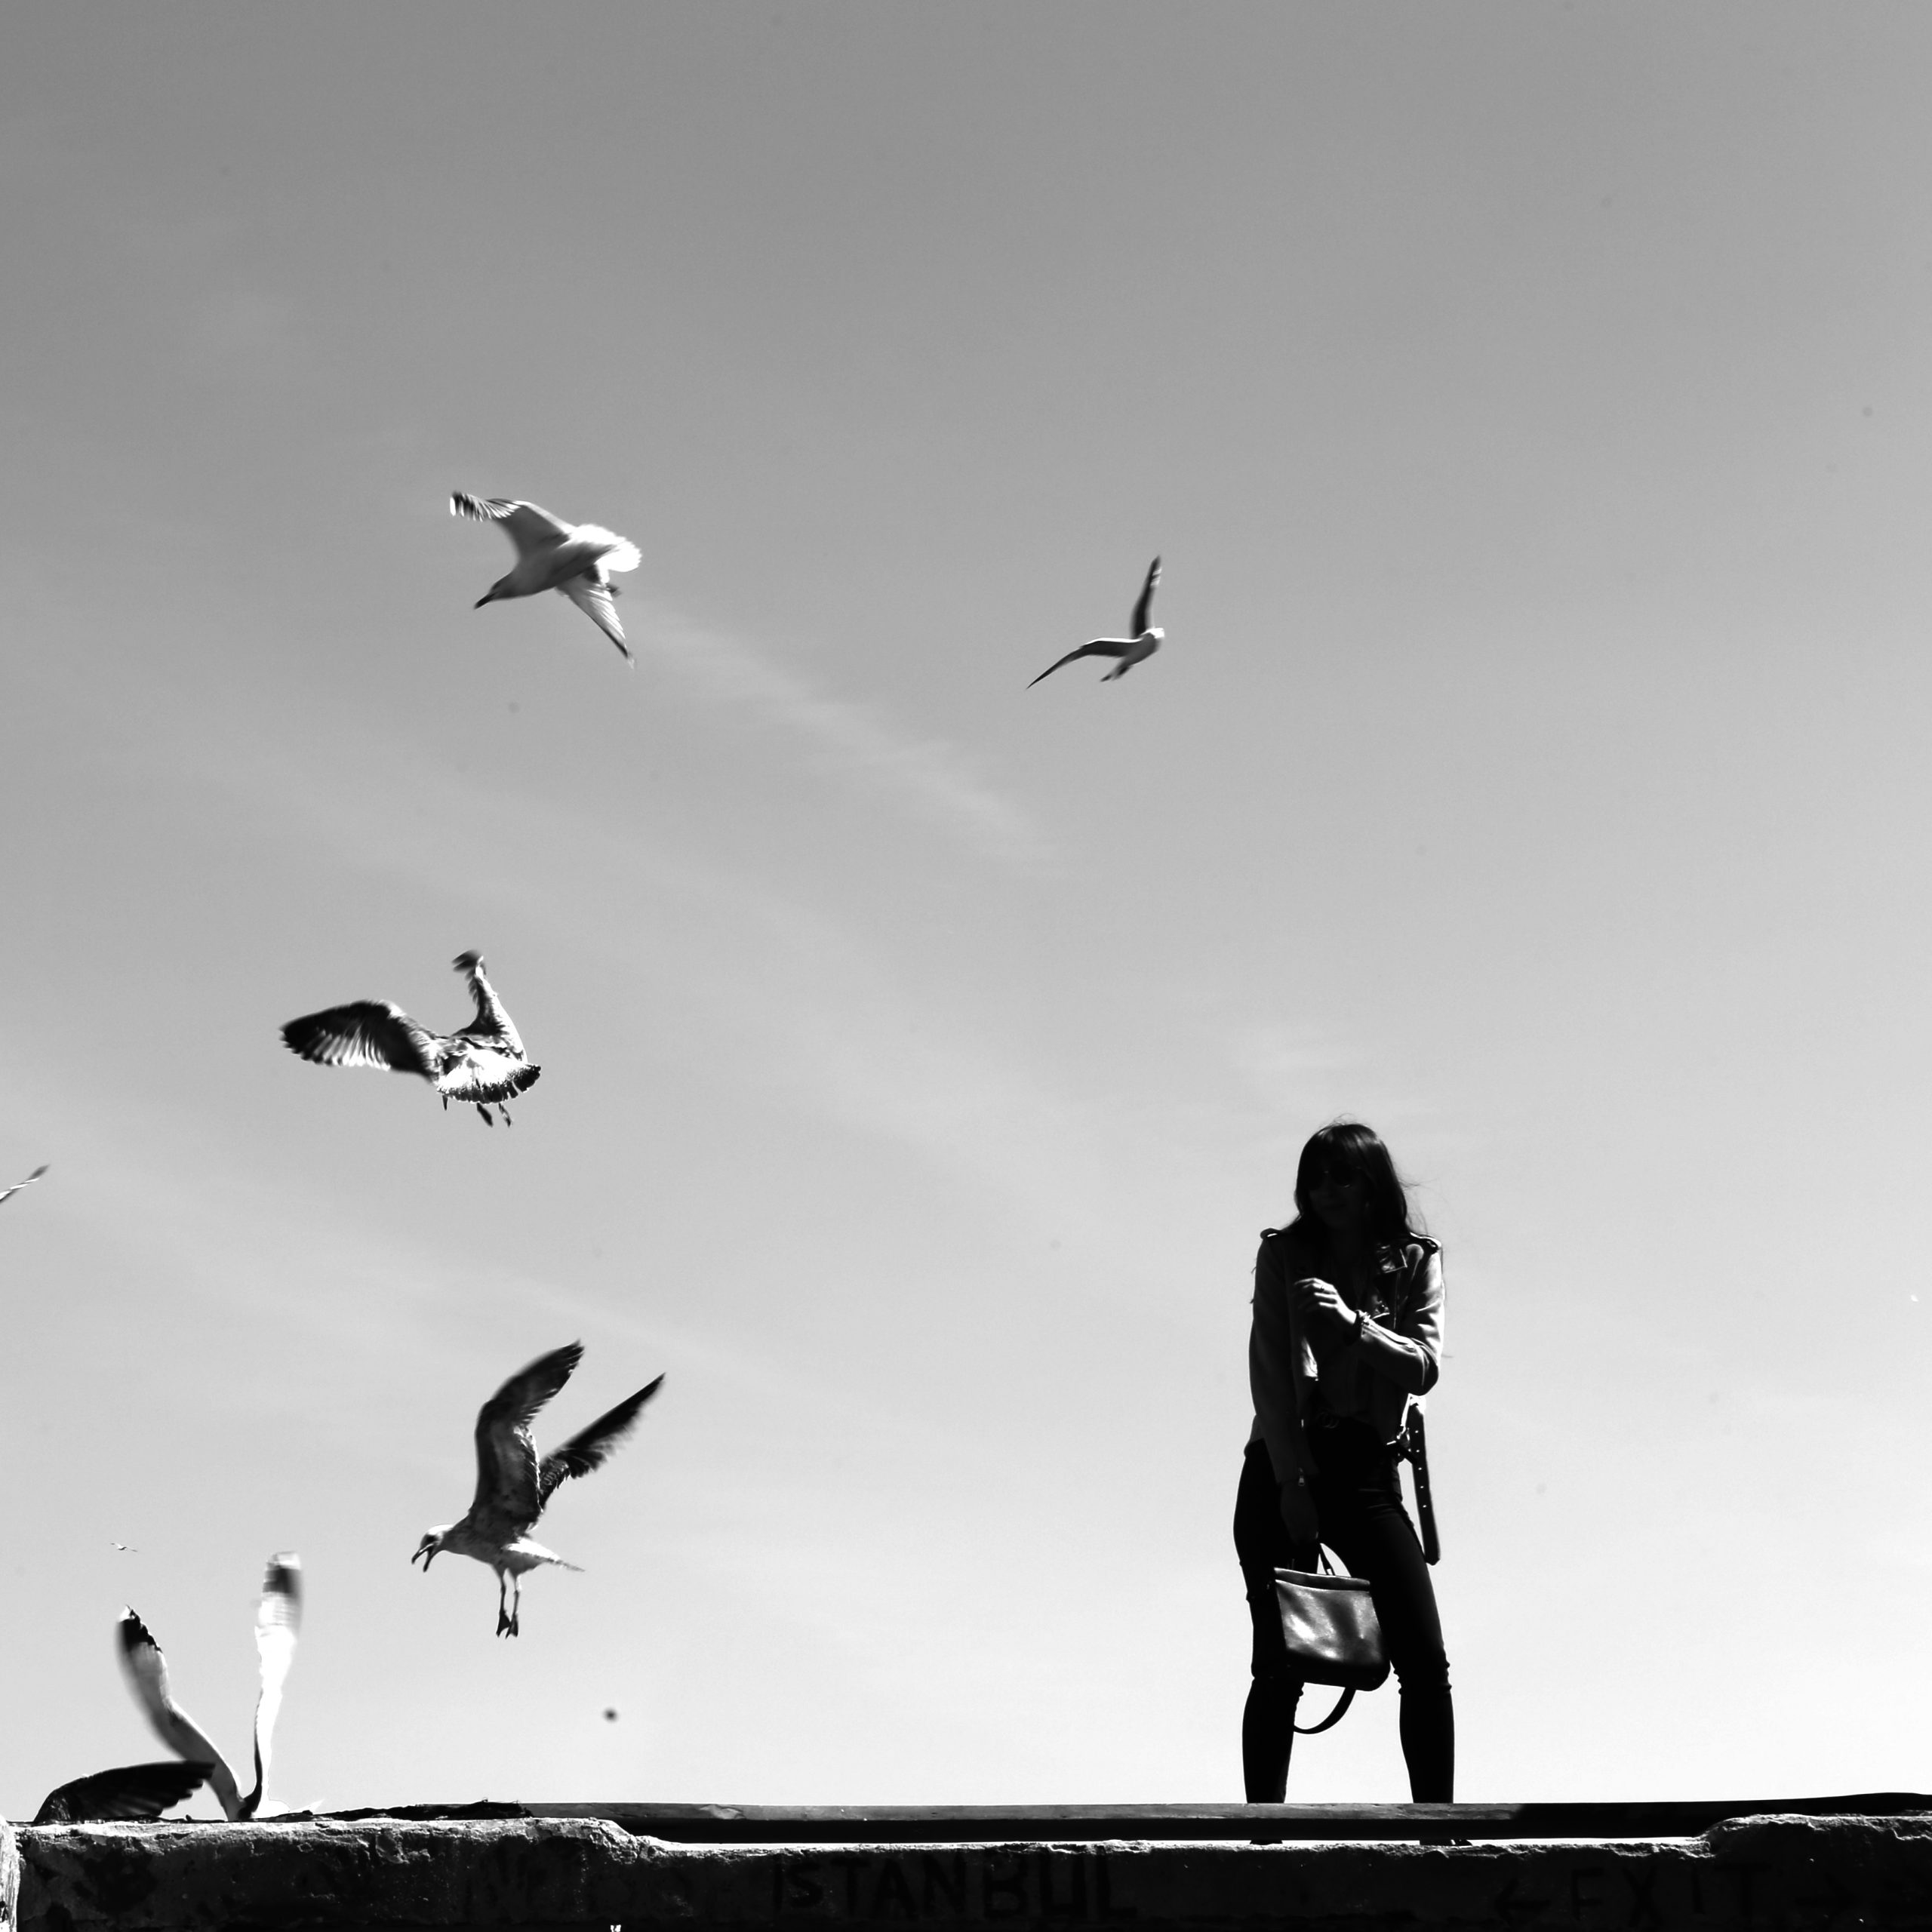 Dance with the seagulls